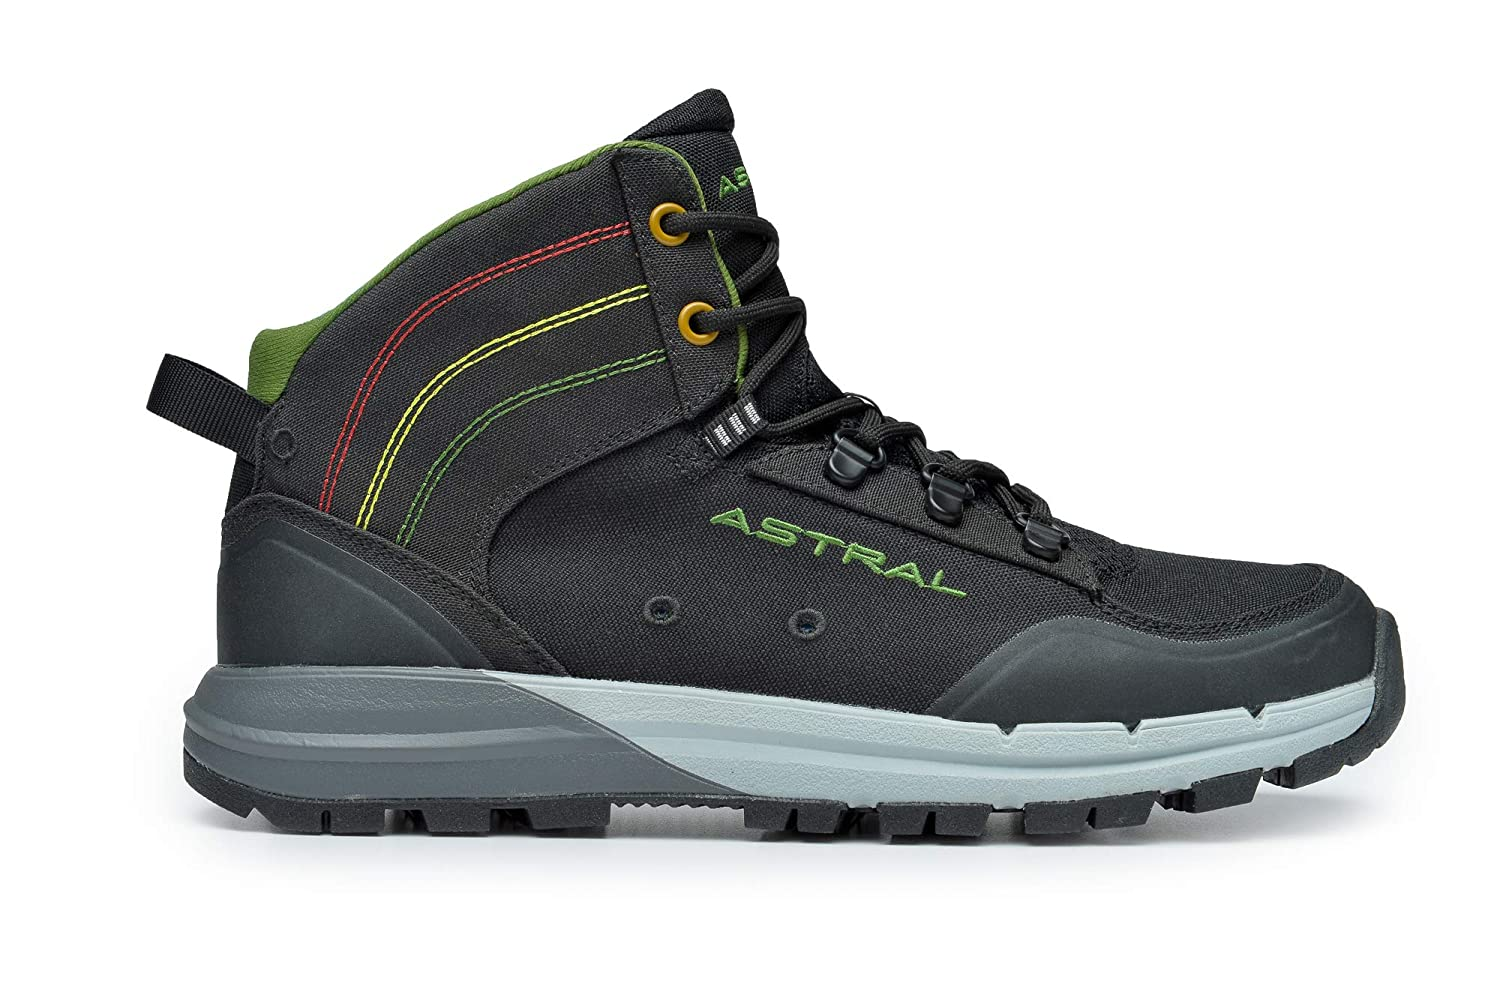 11.5 M US FTRTMM-631-8 Made for Camping and Backpacking Storm Navy Astral Mens TR1 Merge Minimalist Hiking Boots Quick Drying and Lightweight